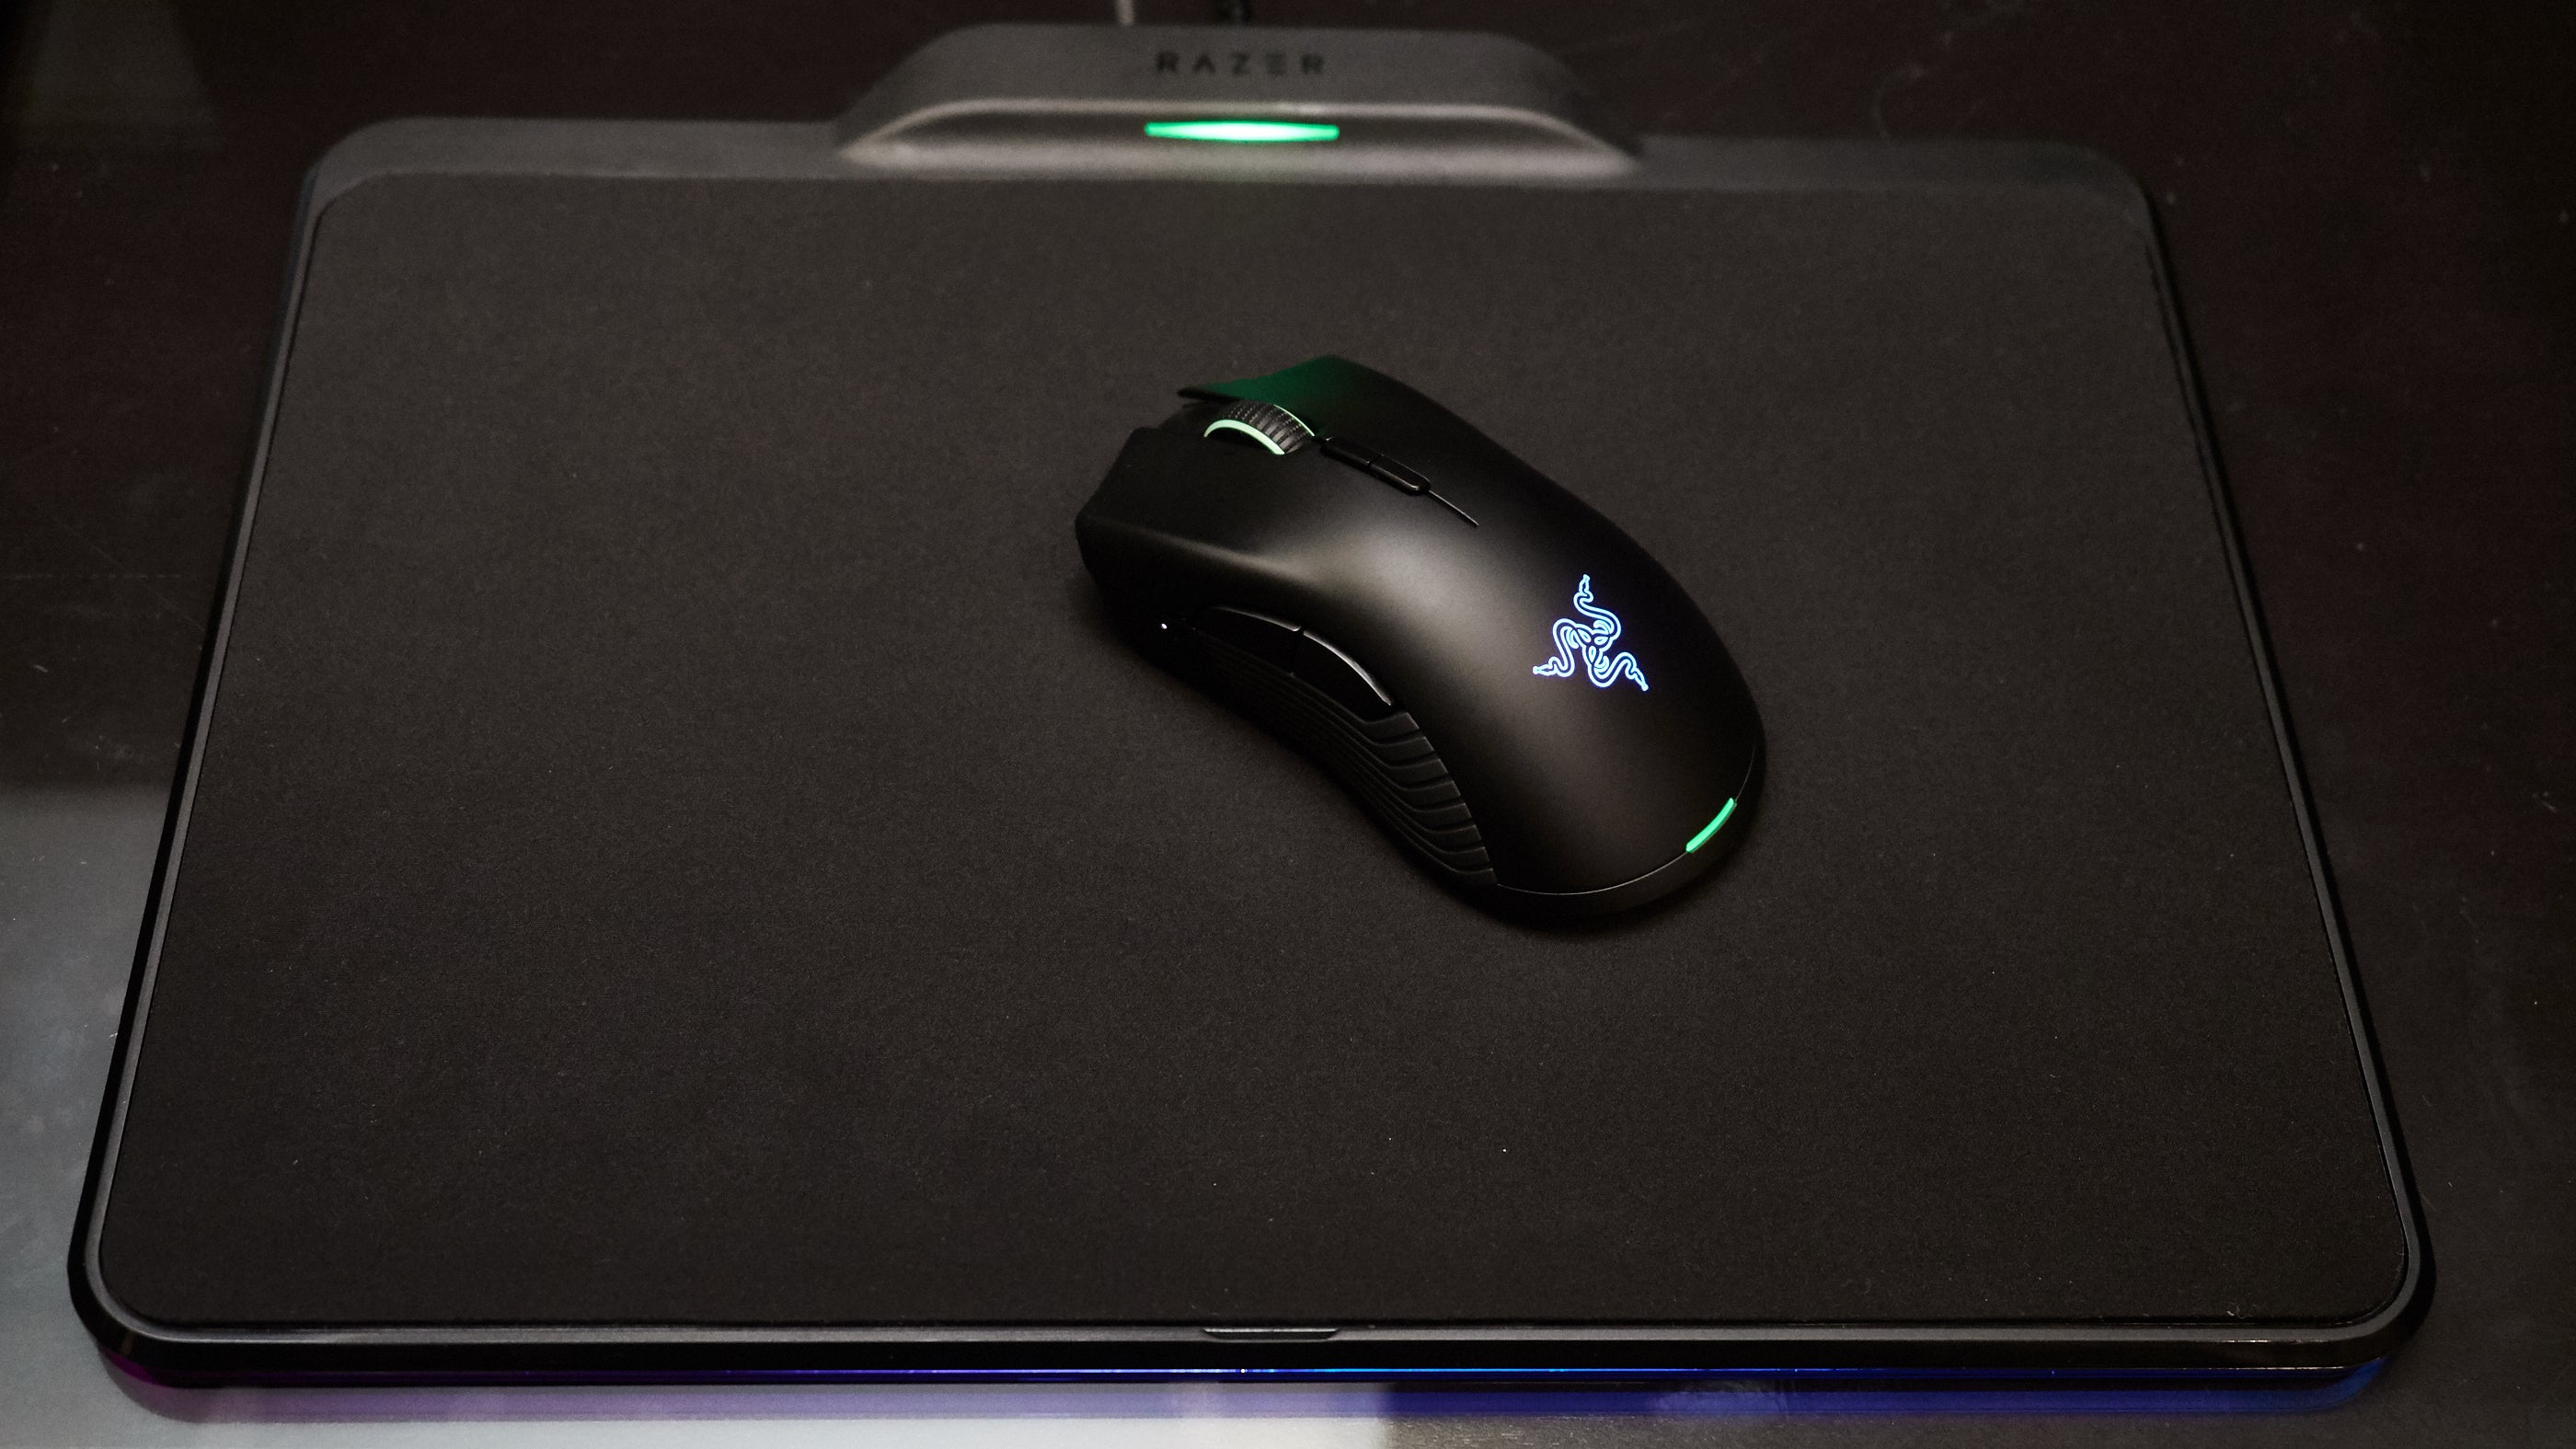 Razer's New Wireless Mouse Charges Through The Mousepad